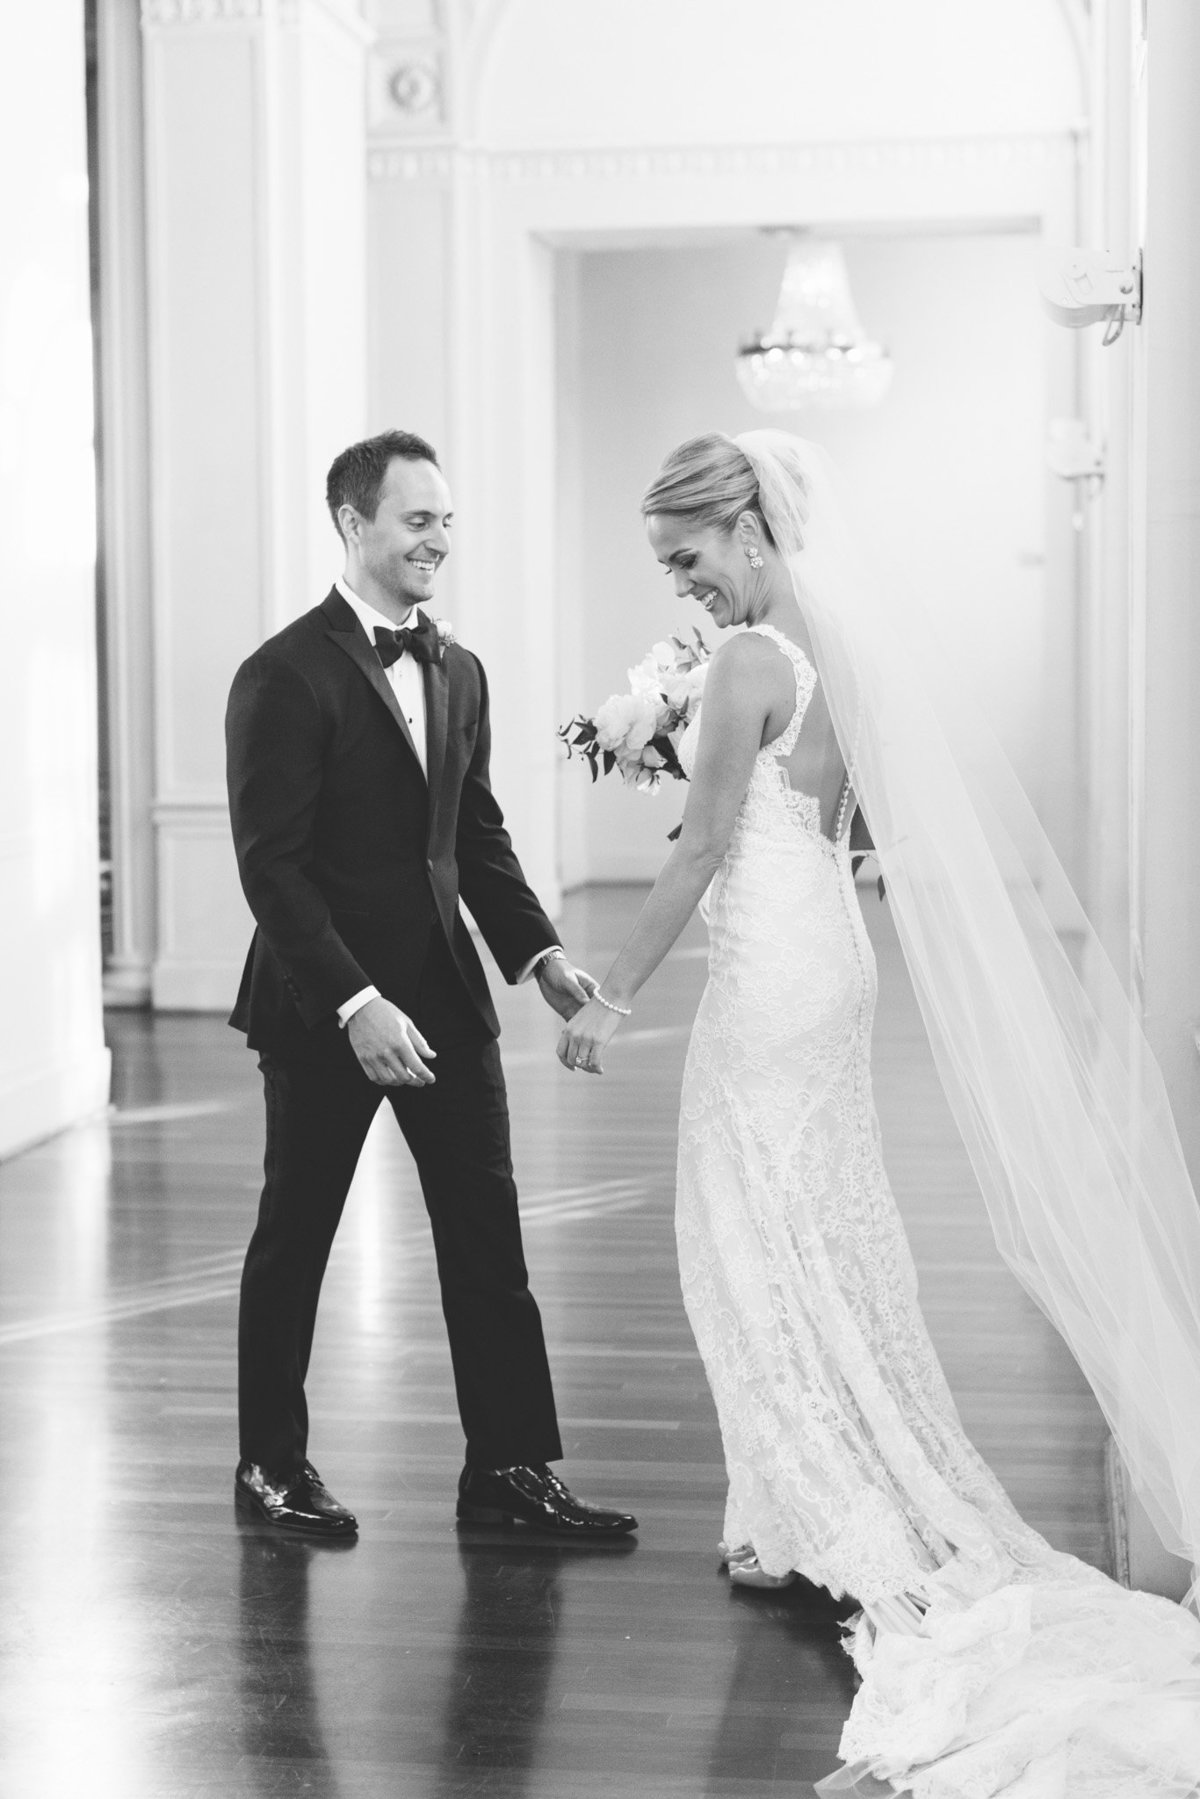 All the joy as this groom sees his bride at their first look in the Georgian ballroom at the Biltmore Atlanta.  Photo by Rebecca Cerasani.